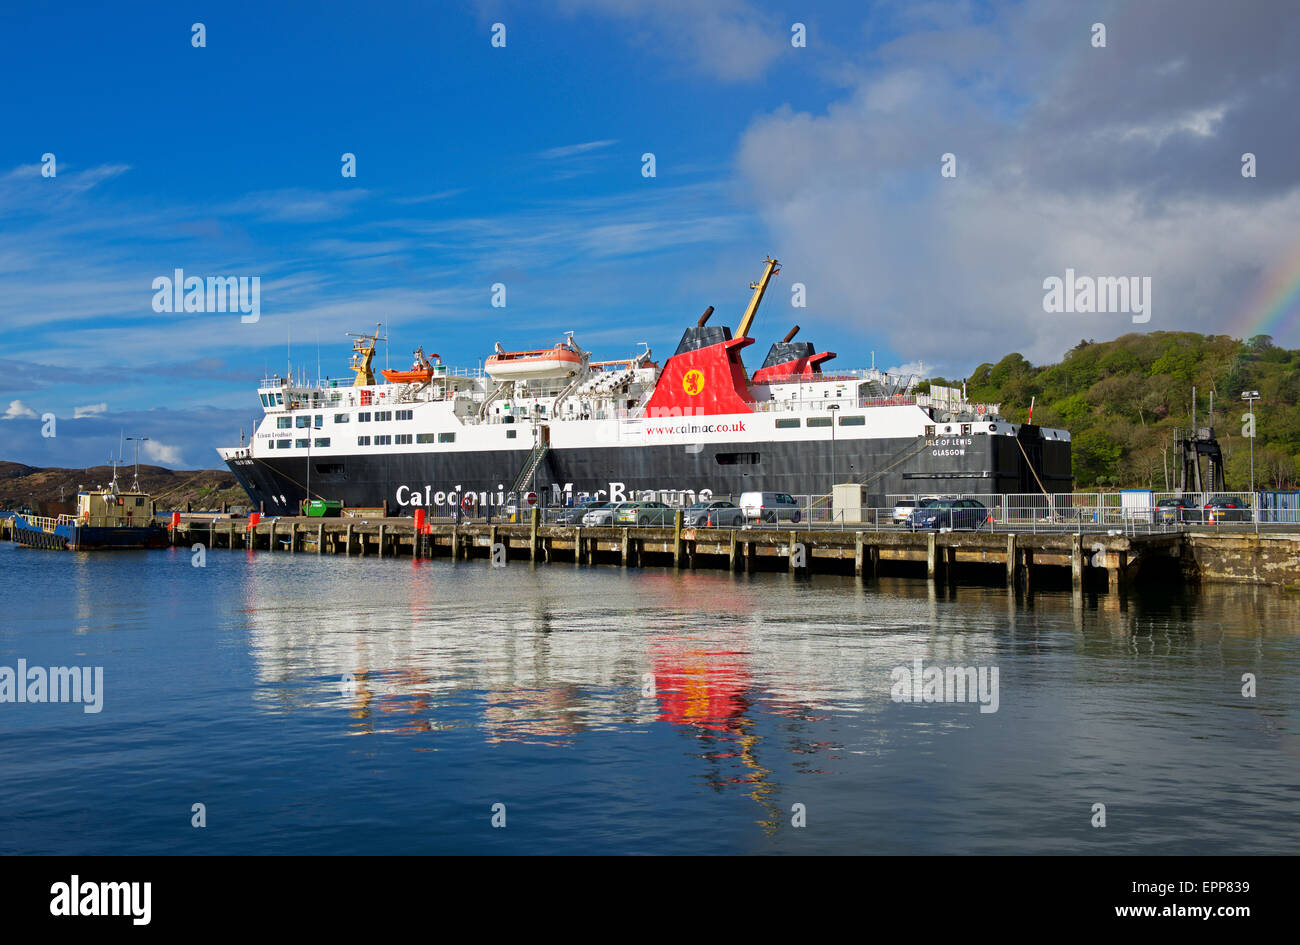 CalMac Ferry berthed at the port of Stornoway, Isle of Lewis, Outer Hebrides, Scotland UK - Stock Image